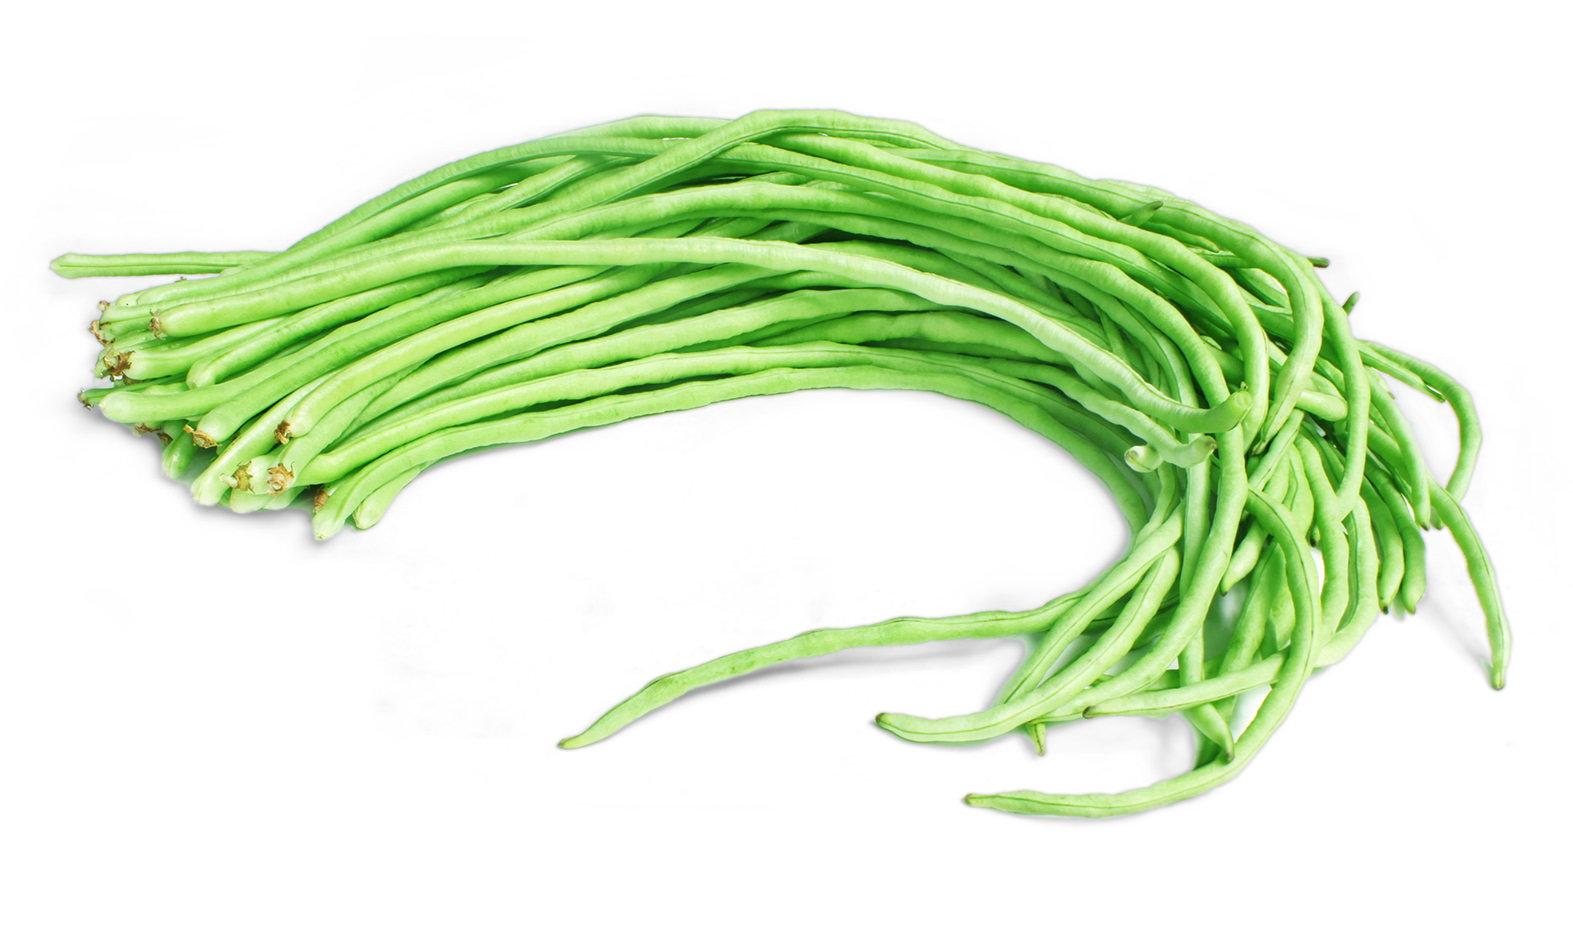 Chinese Long Beans Image